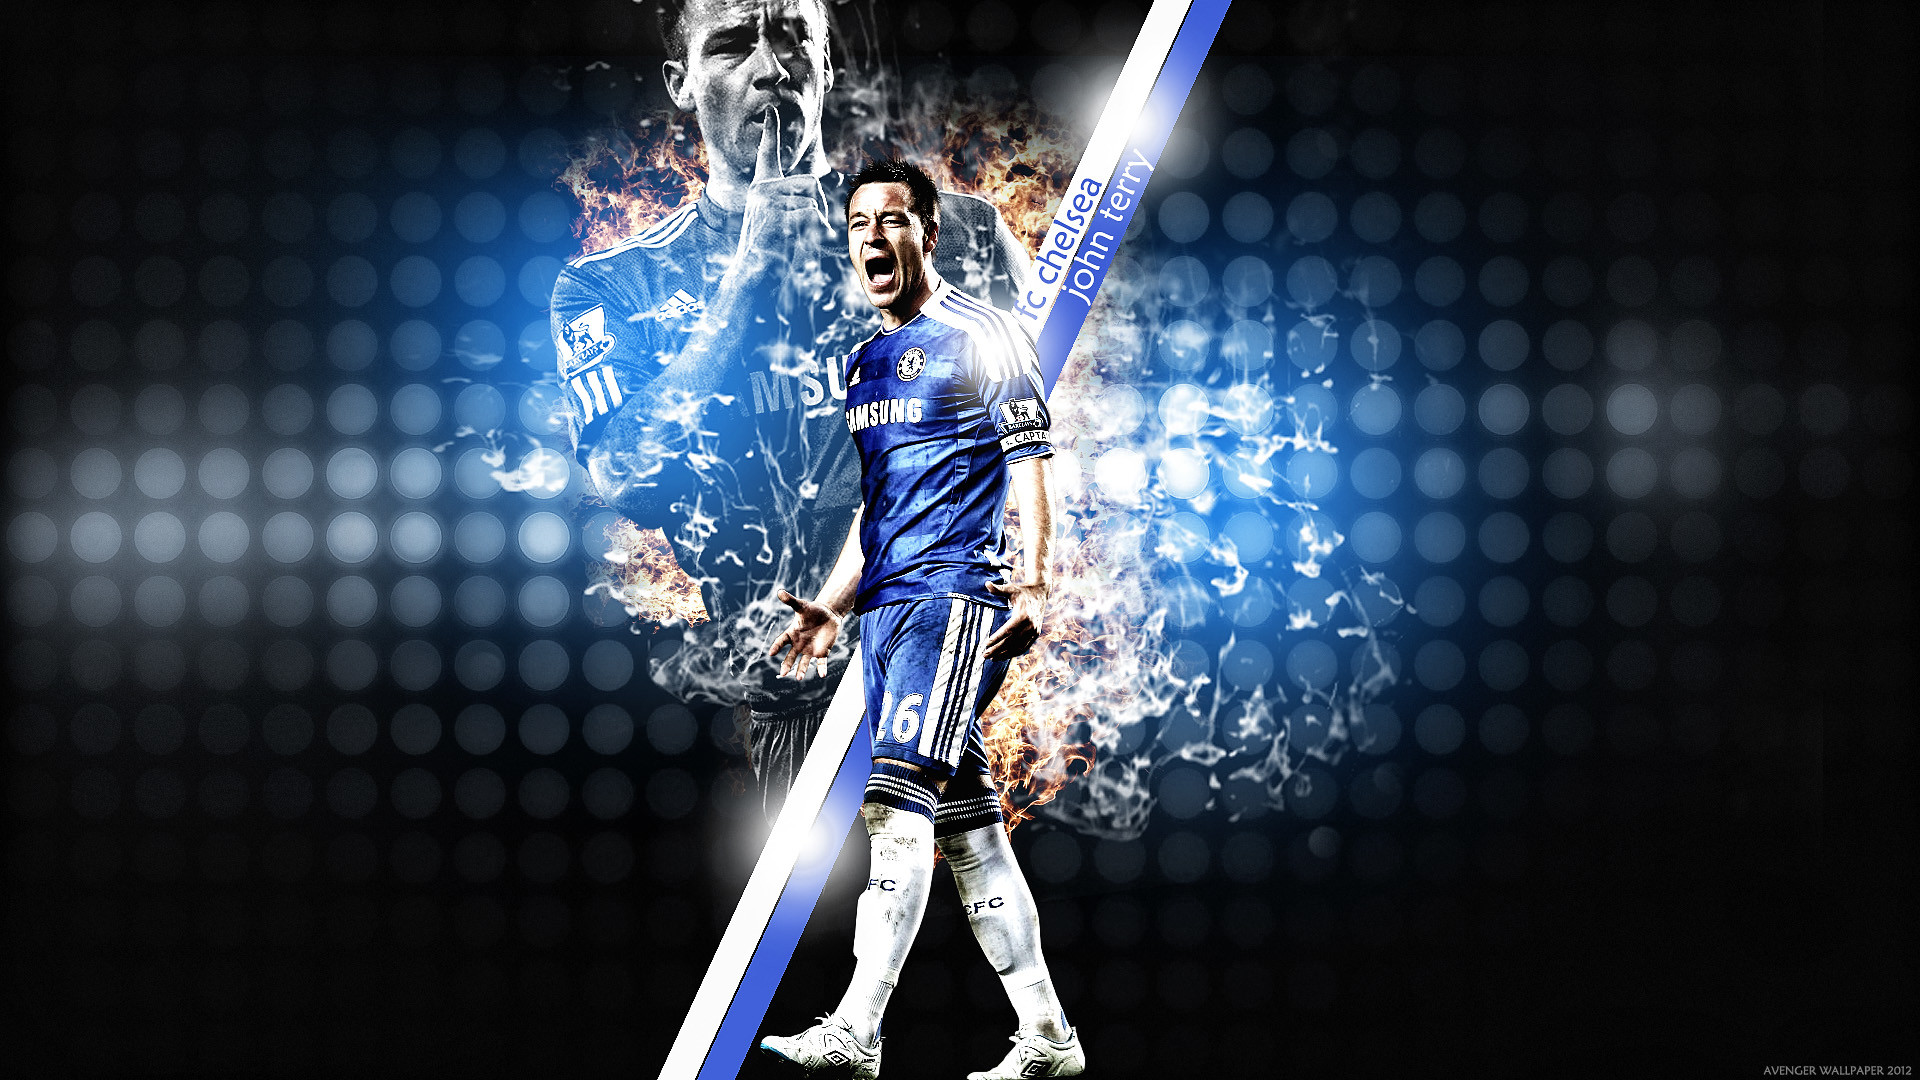 Chelsea hd wallpapers 1080p 75 images 1920x1200 chelsea wallpaper chelseawallpapersforgalaxys6 chelsea wallpaper chelsea fc logo background hd voltagebd Gallery